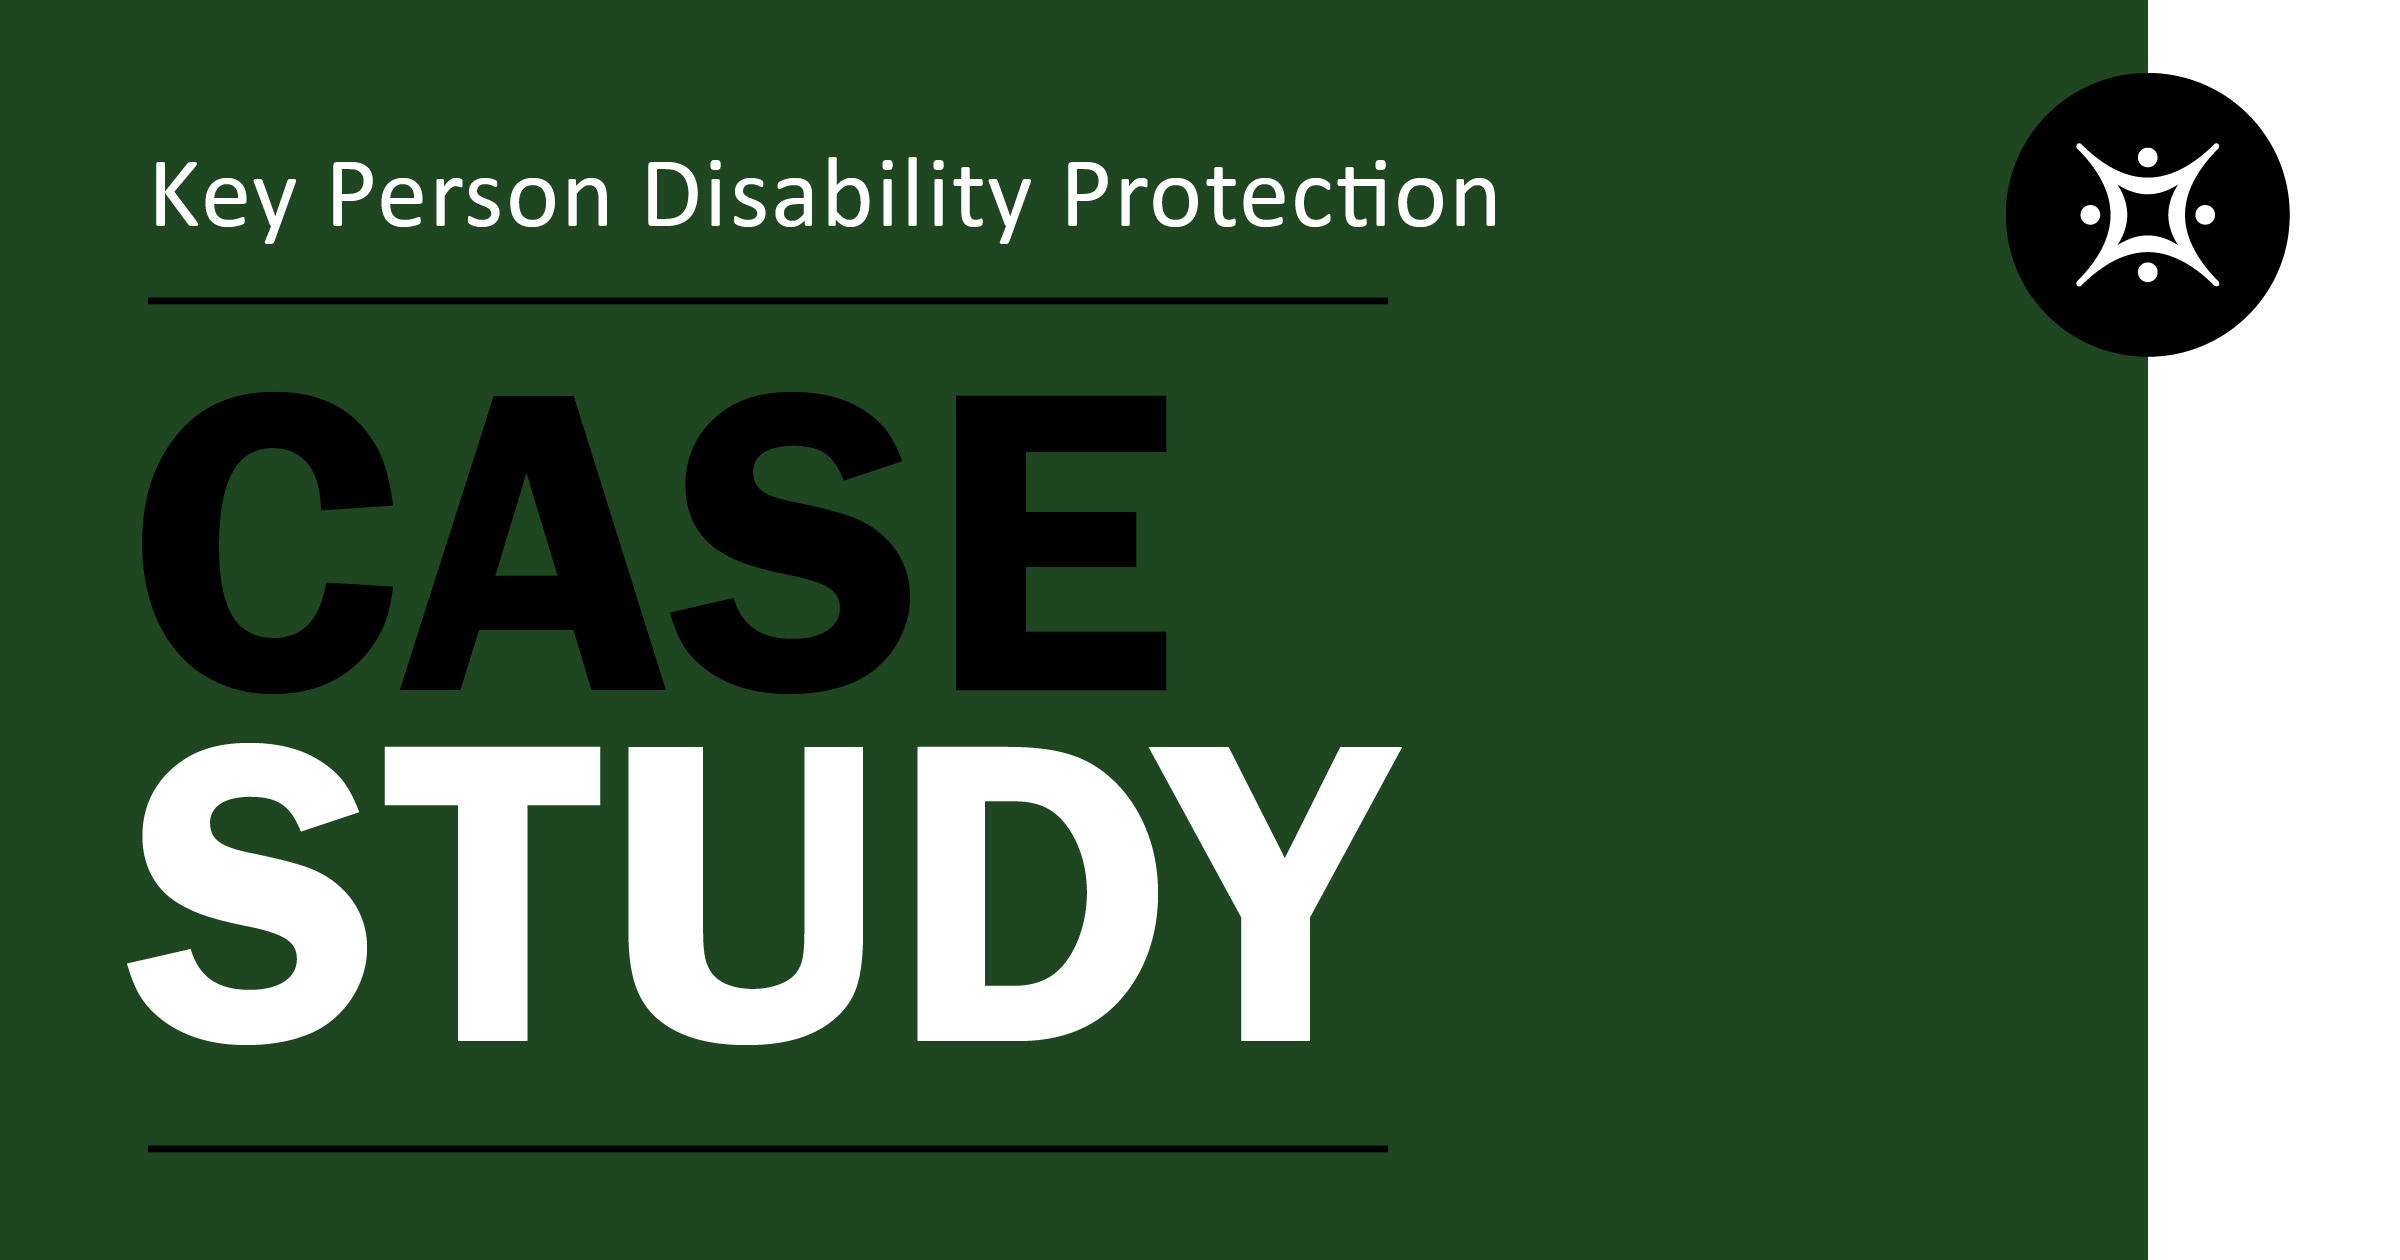 Key Person Disability Protection (Video and Case Study)